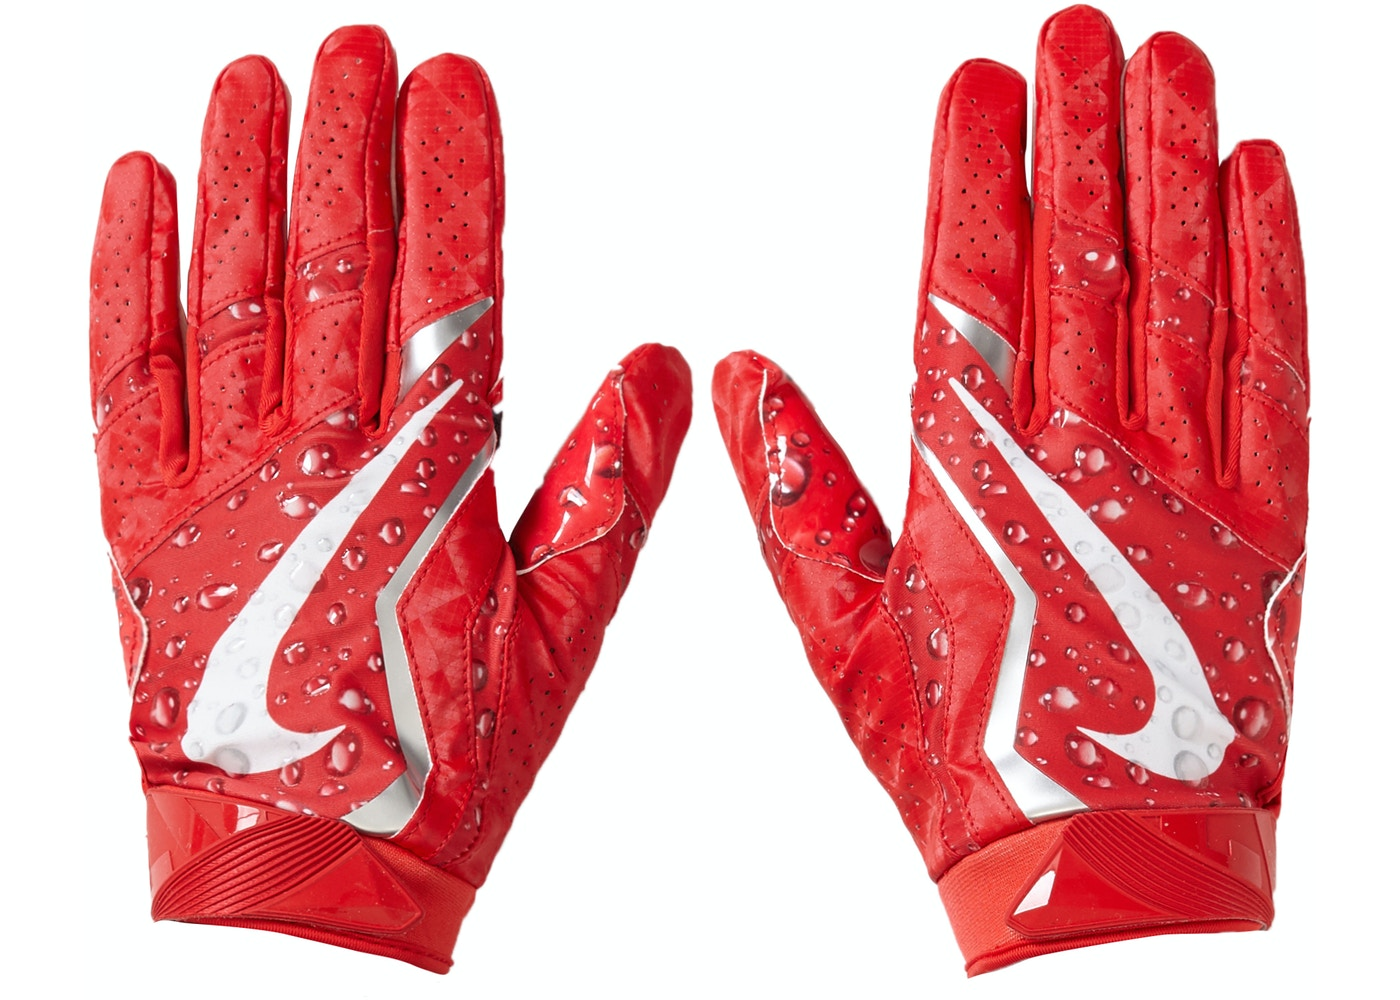 7eedc2b63a6 Supreme Nike Vapor Jet 4.0 Football Gloves Red - FW18